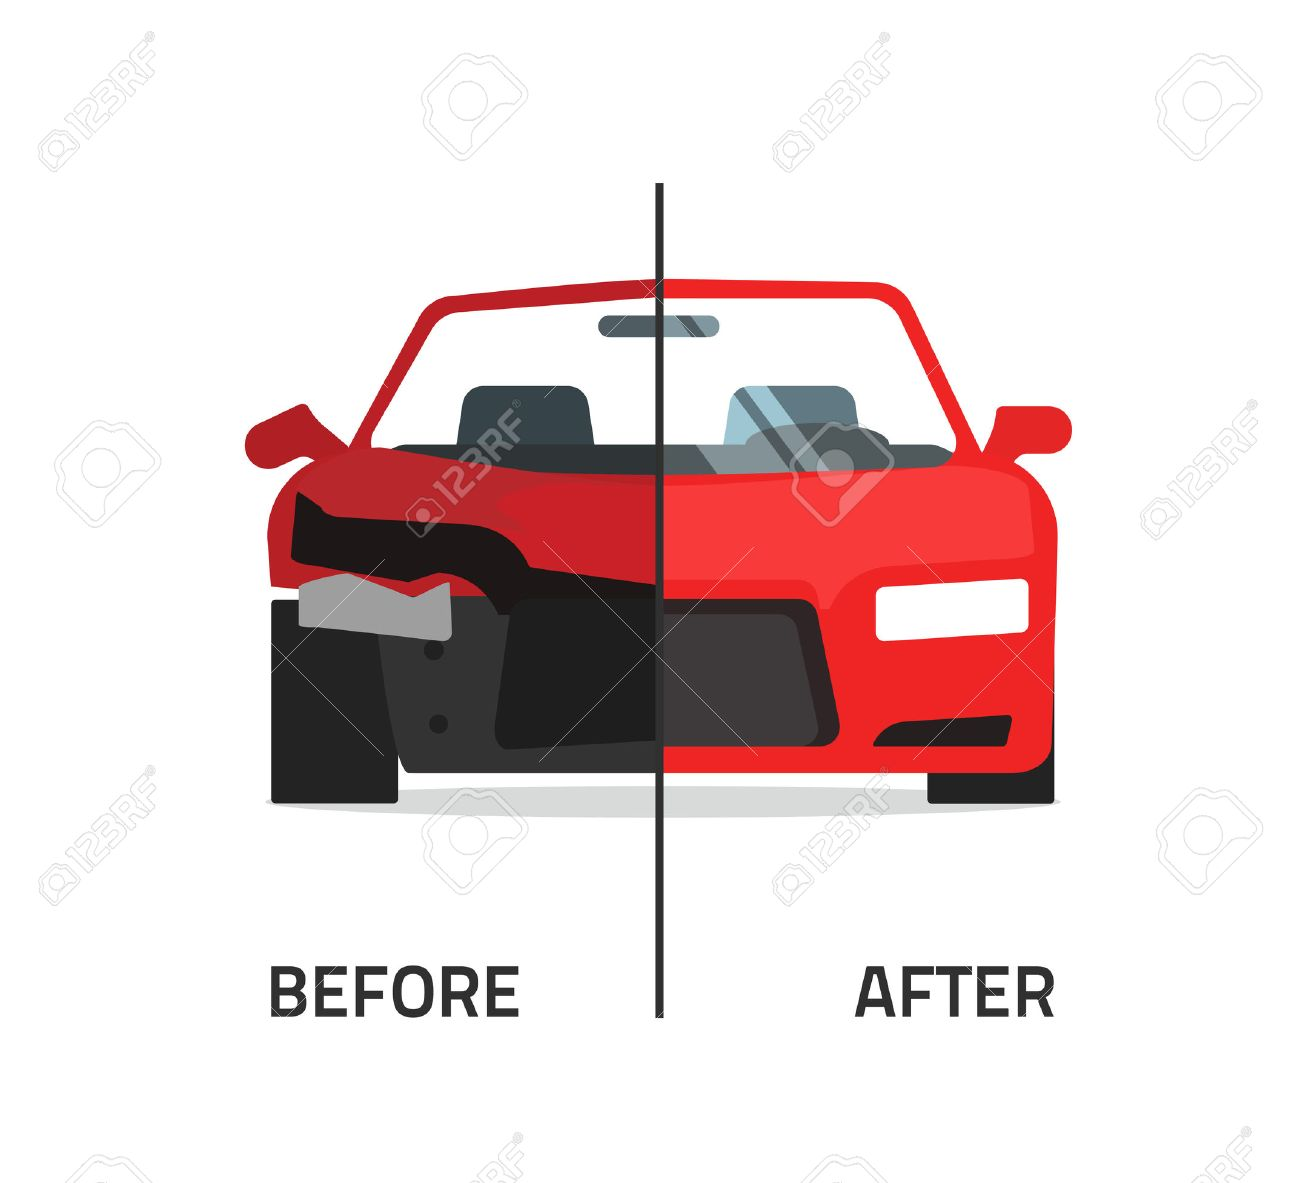 Car body frame repair vector illustration, auto body paint concept, automobile service, vehicle automotive technology help, before after, flat icon isolated crushed auto, poster design banner emblem - 59742335